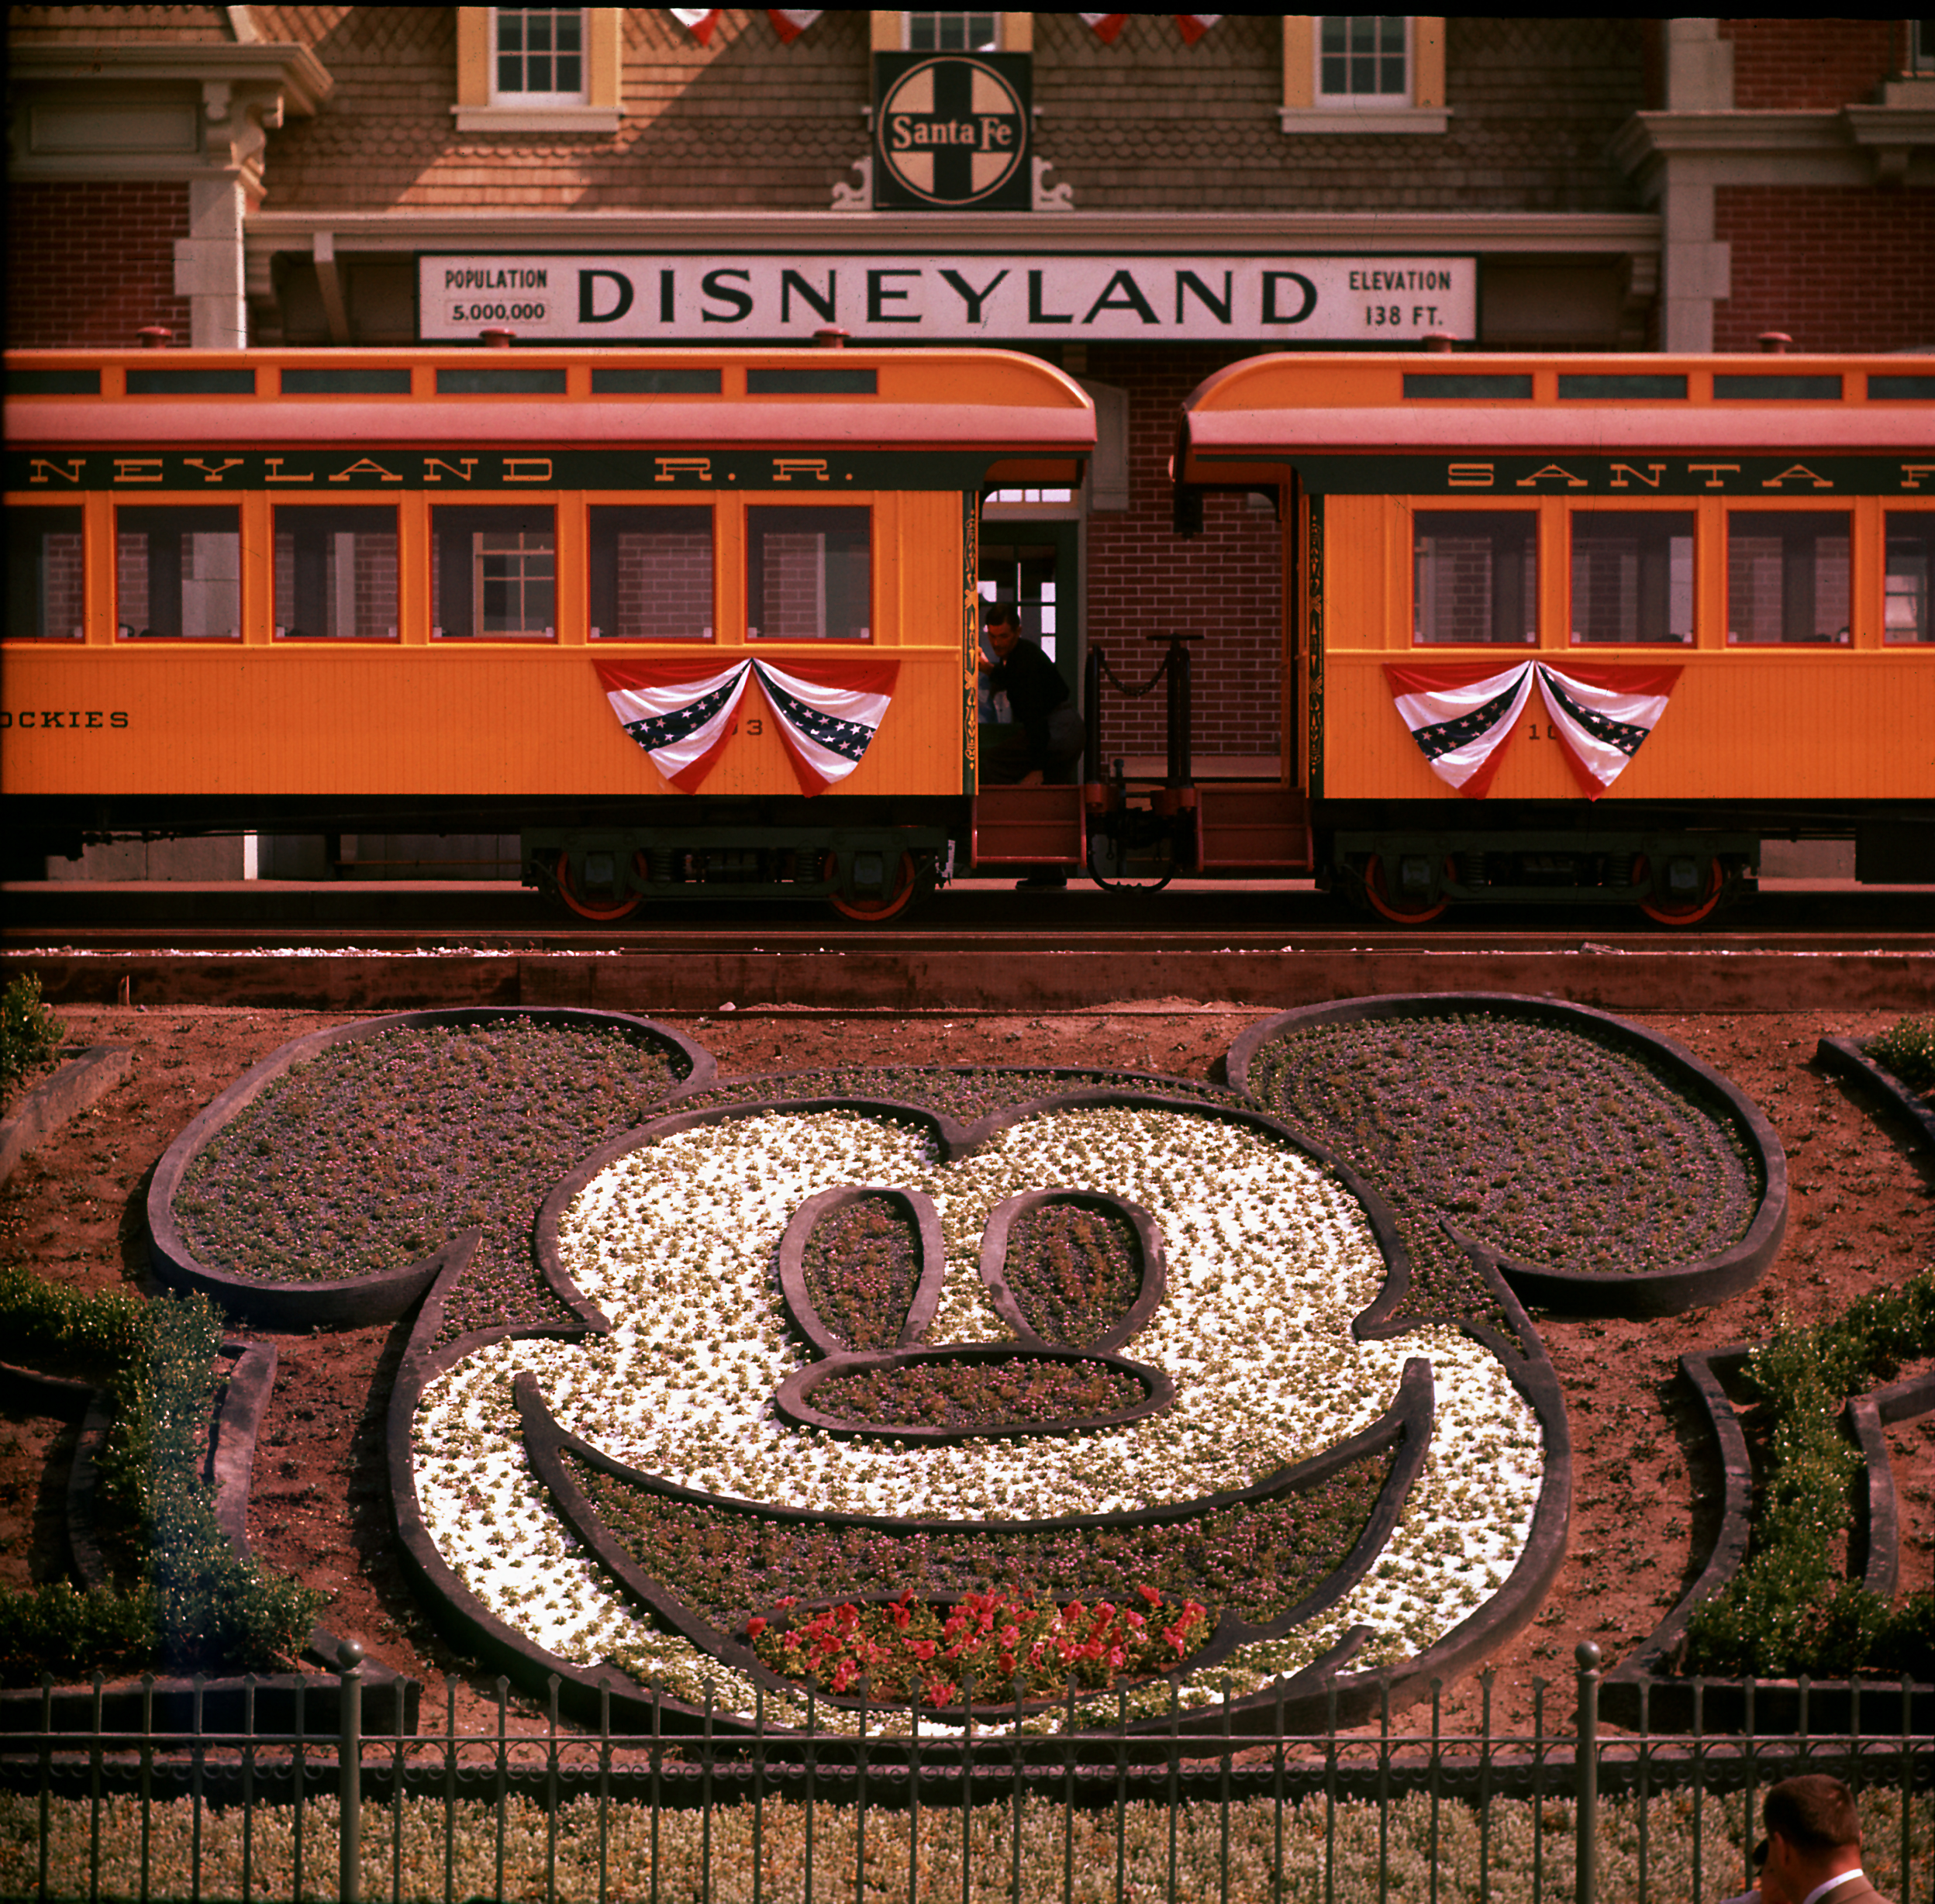 Planted flowers forming design of Mickey Mouse's face, with Disneyland train in background.  (Photo by Loomis Dean/The LIFE Picture Collection/Getty Images)